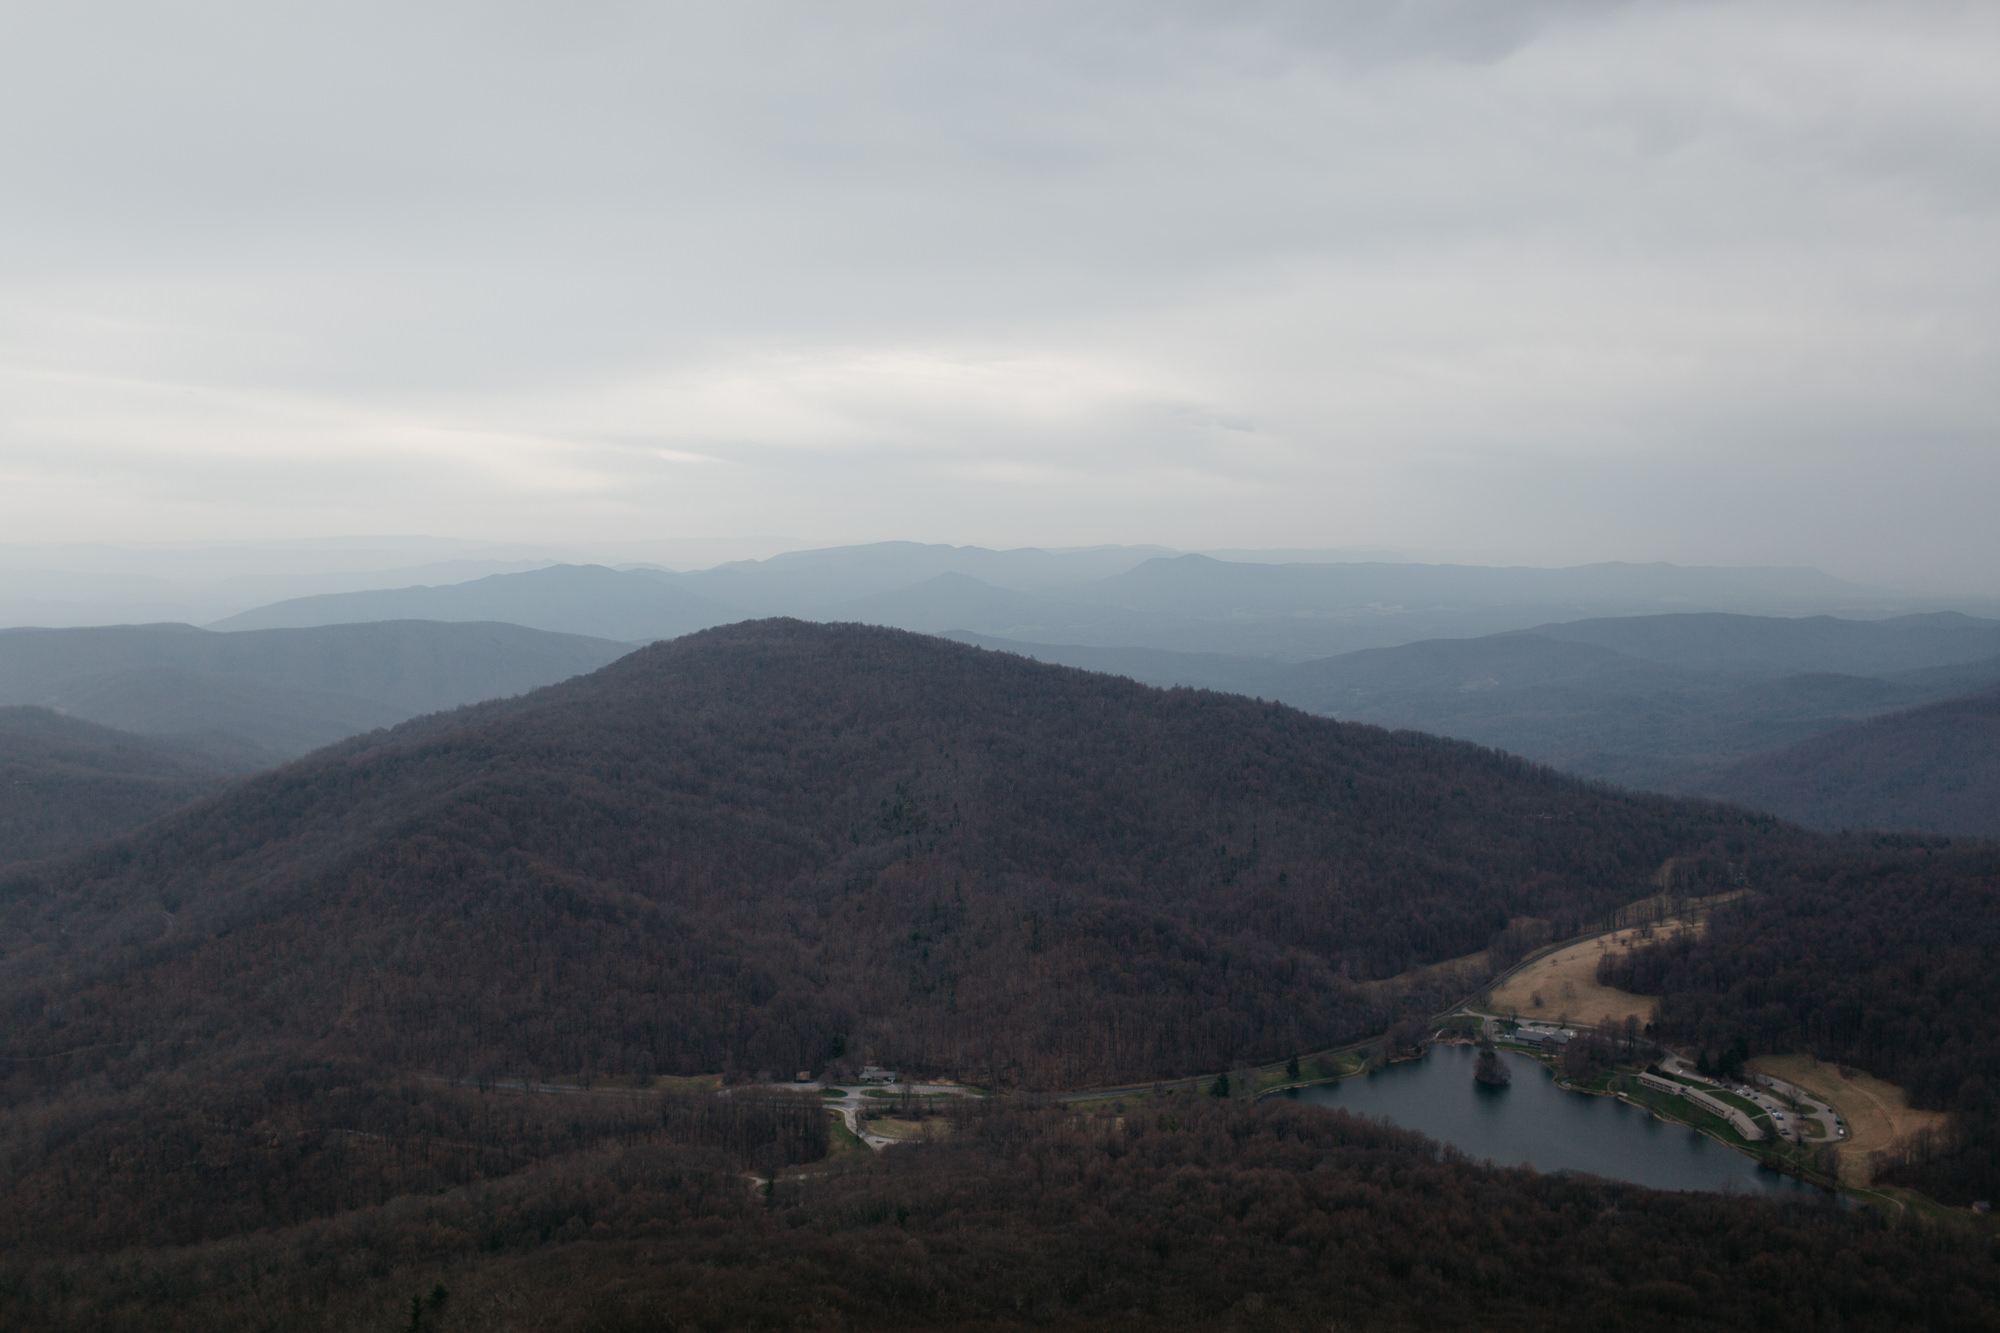 Peaks-of-Otter-Virginia-Of-Fate-and-Chaos-Elopement-Sharp-Top-8.jpg